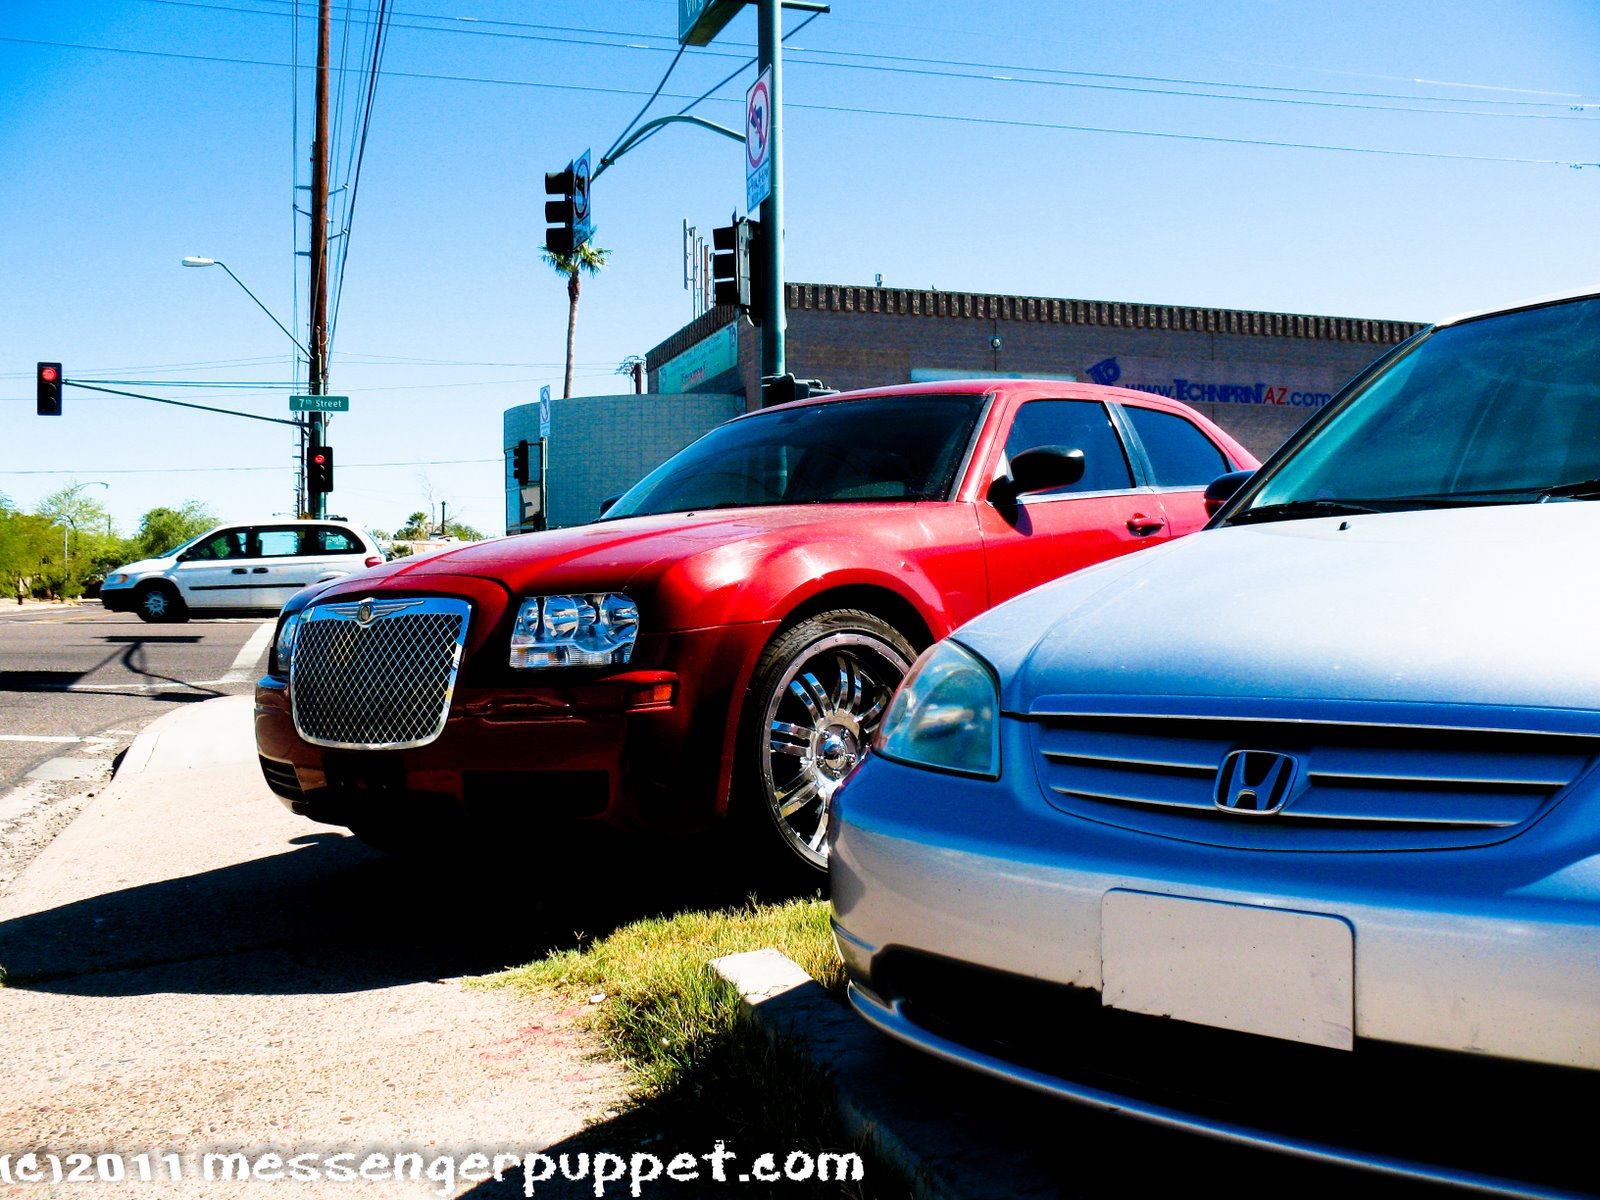 Chrysler 300 Honda Civic